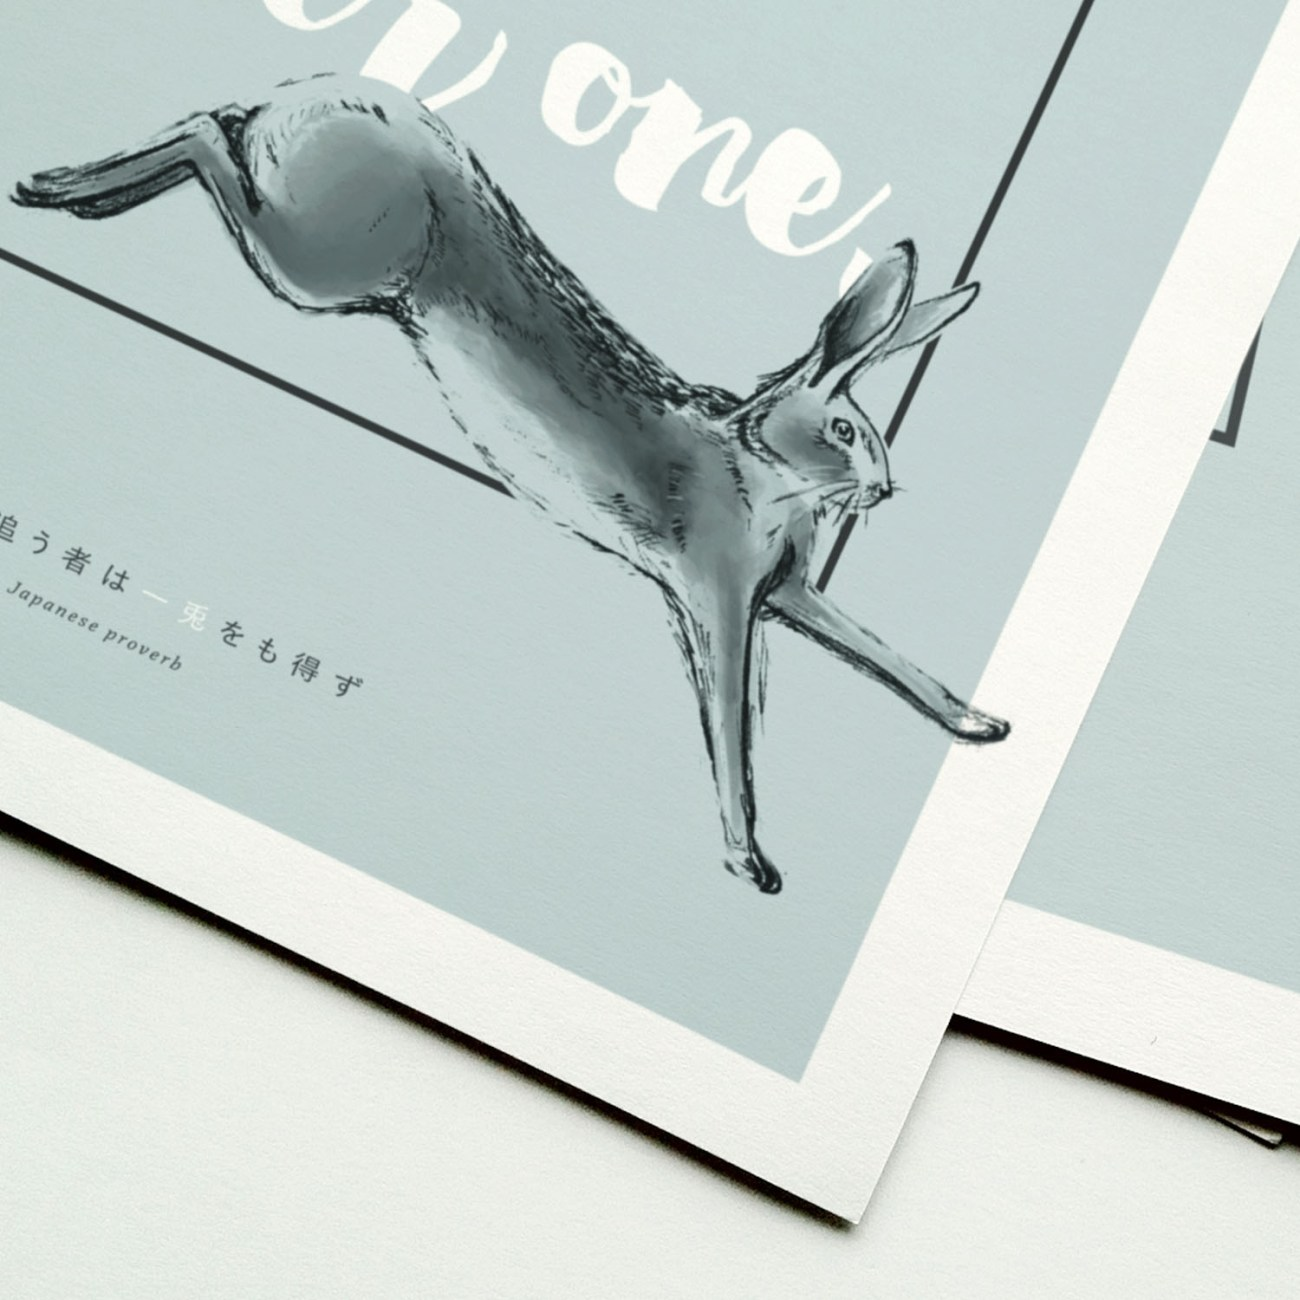 Japanese Proverb posters